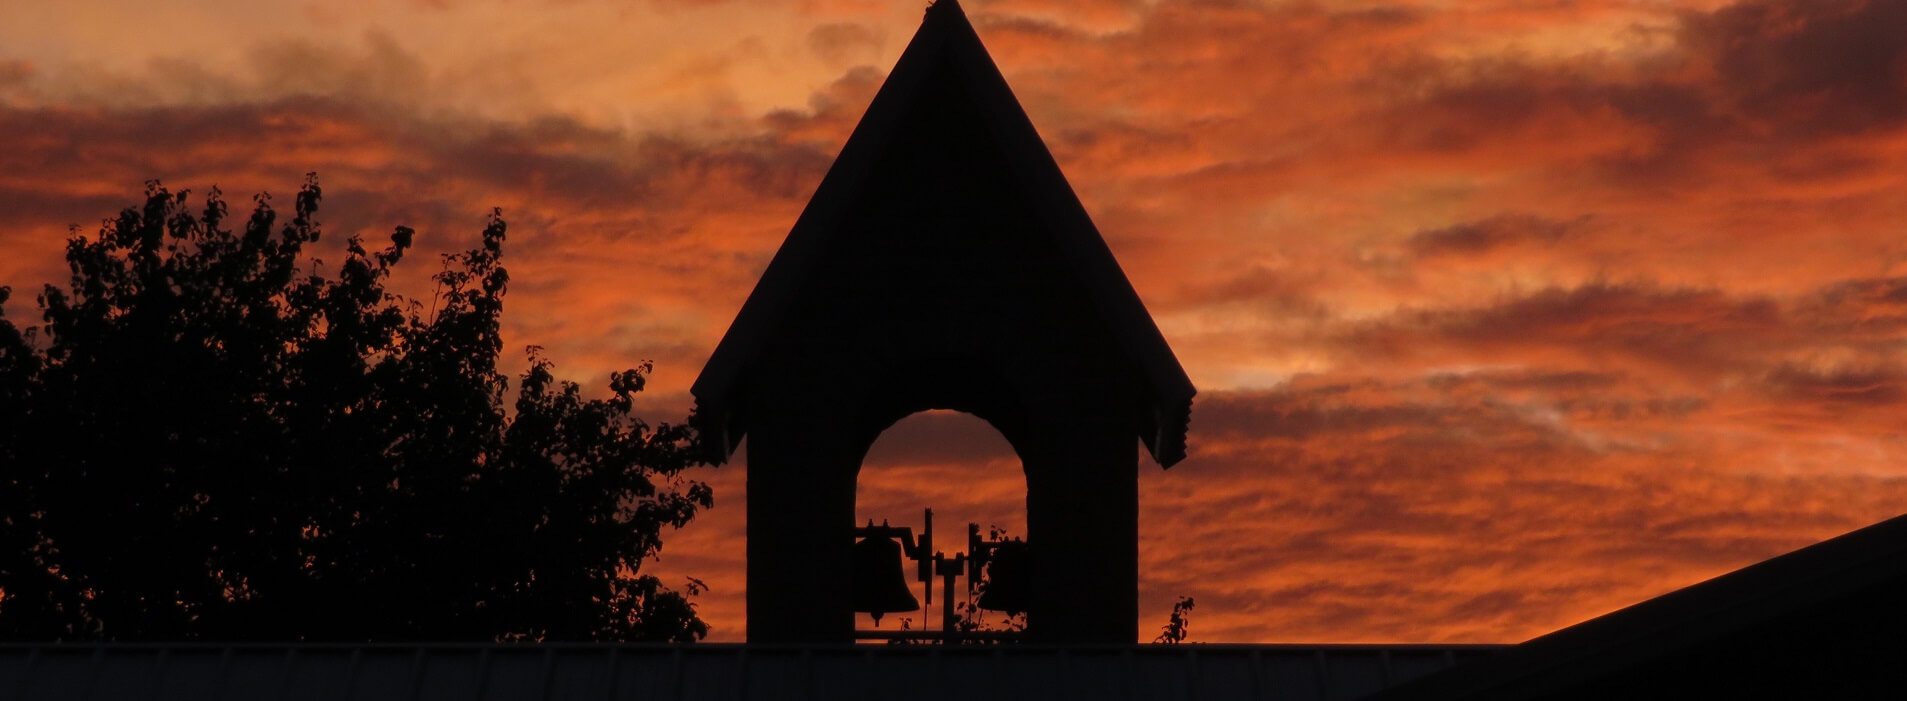 Image 1 – 2020 07 15 bell tower sunset